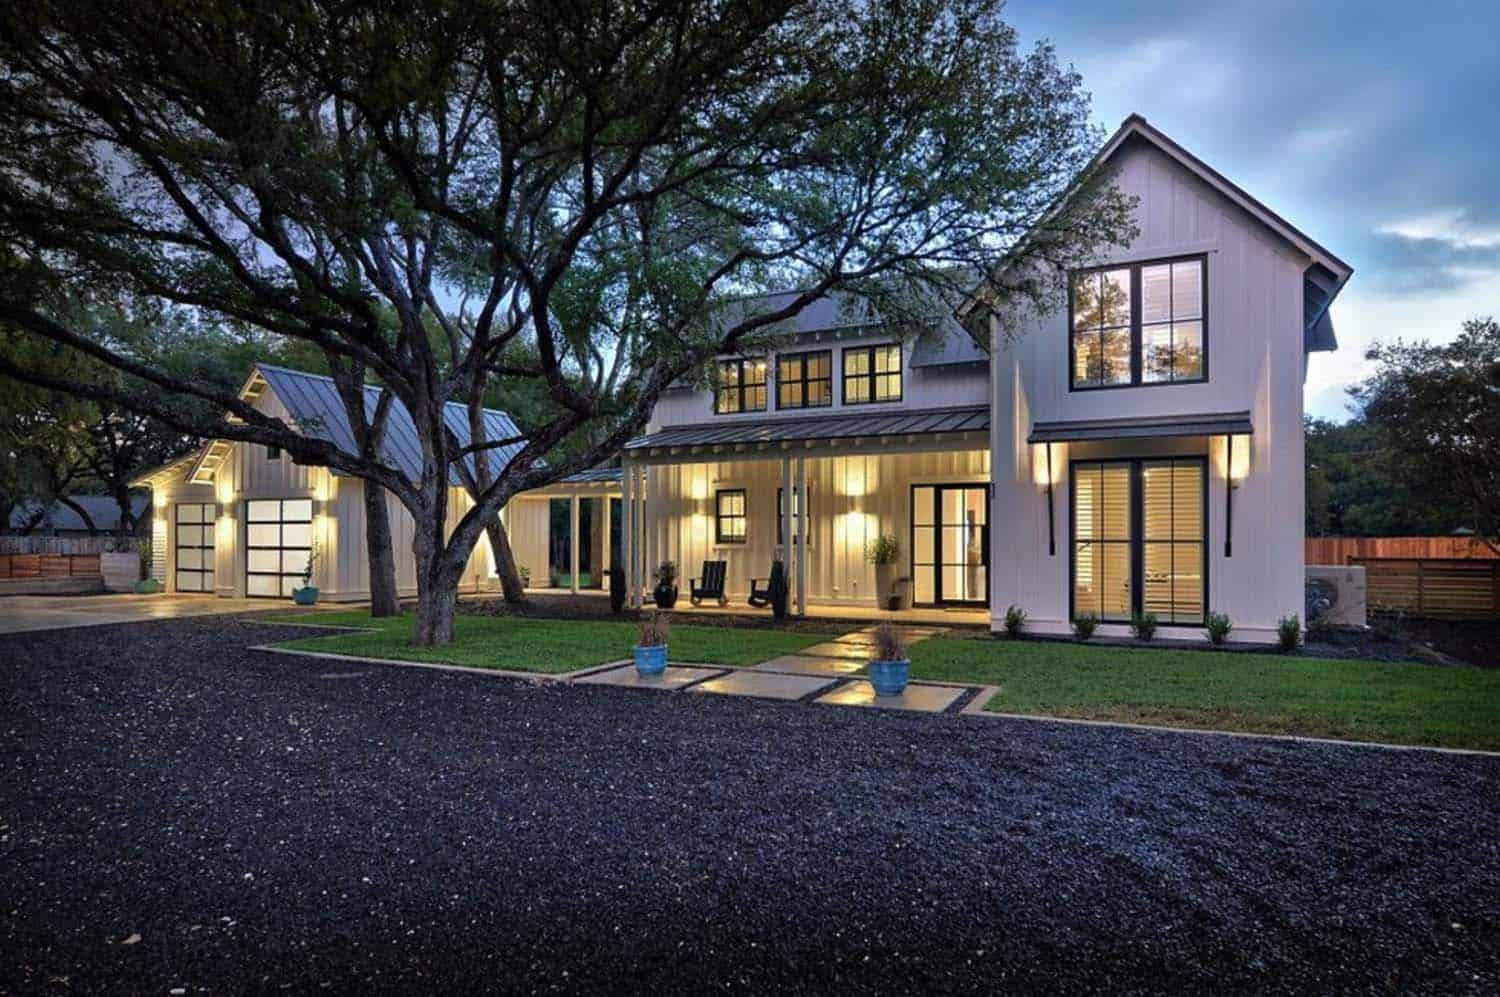 Modernized texas farmhouse filled with eye catching details for European farmhouse plans